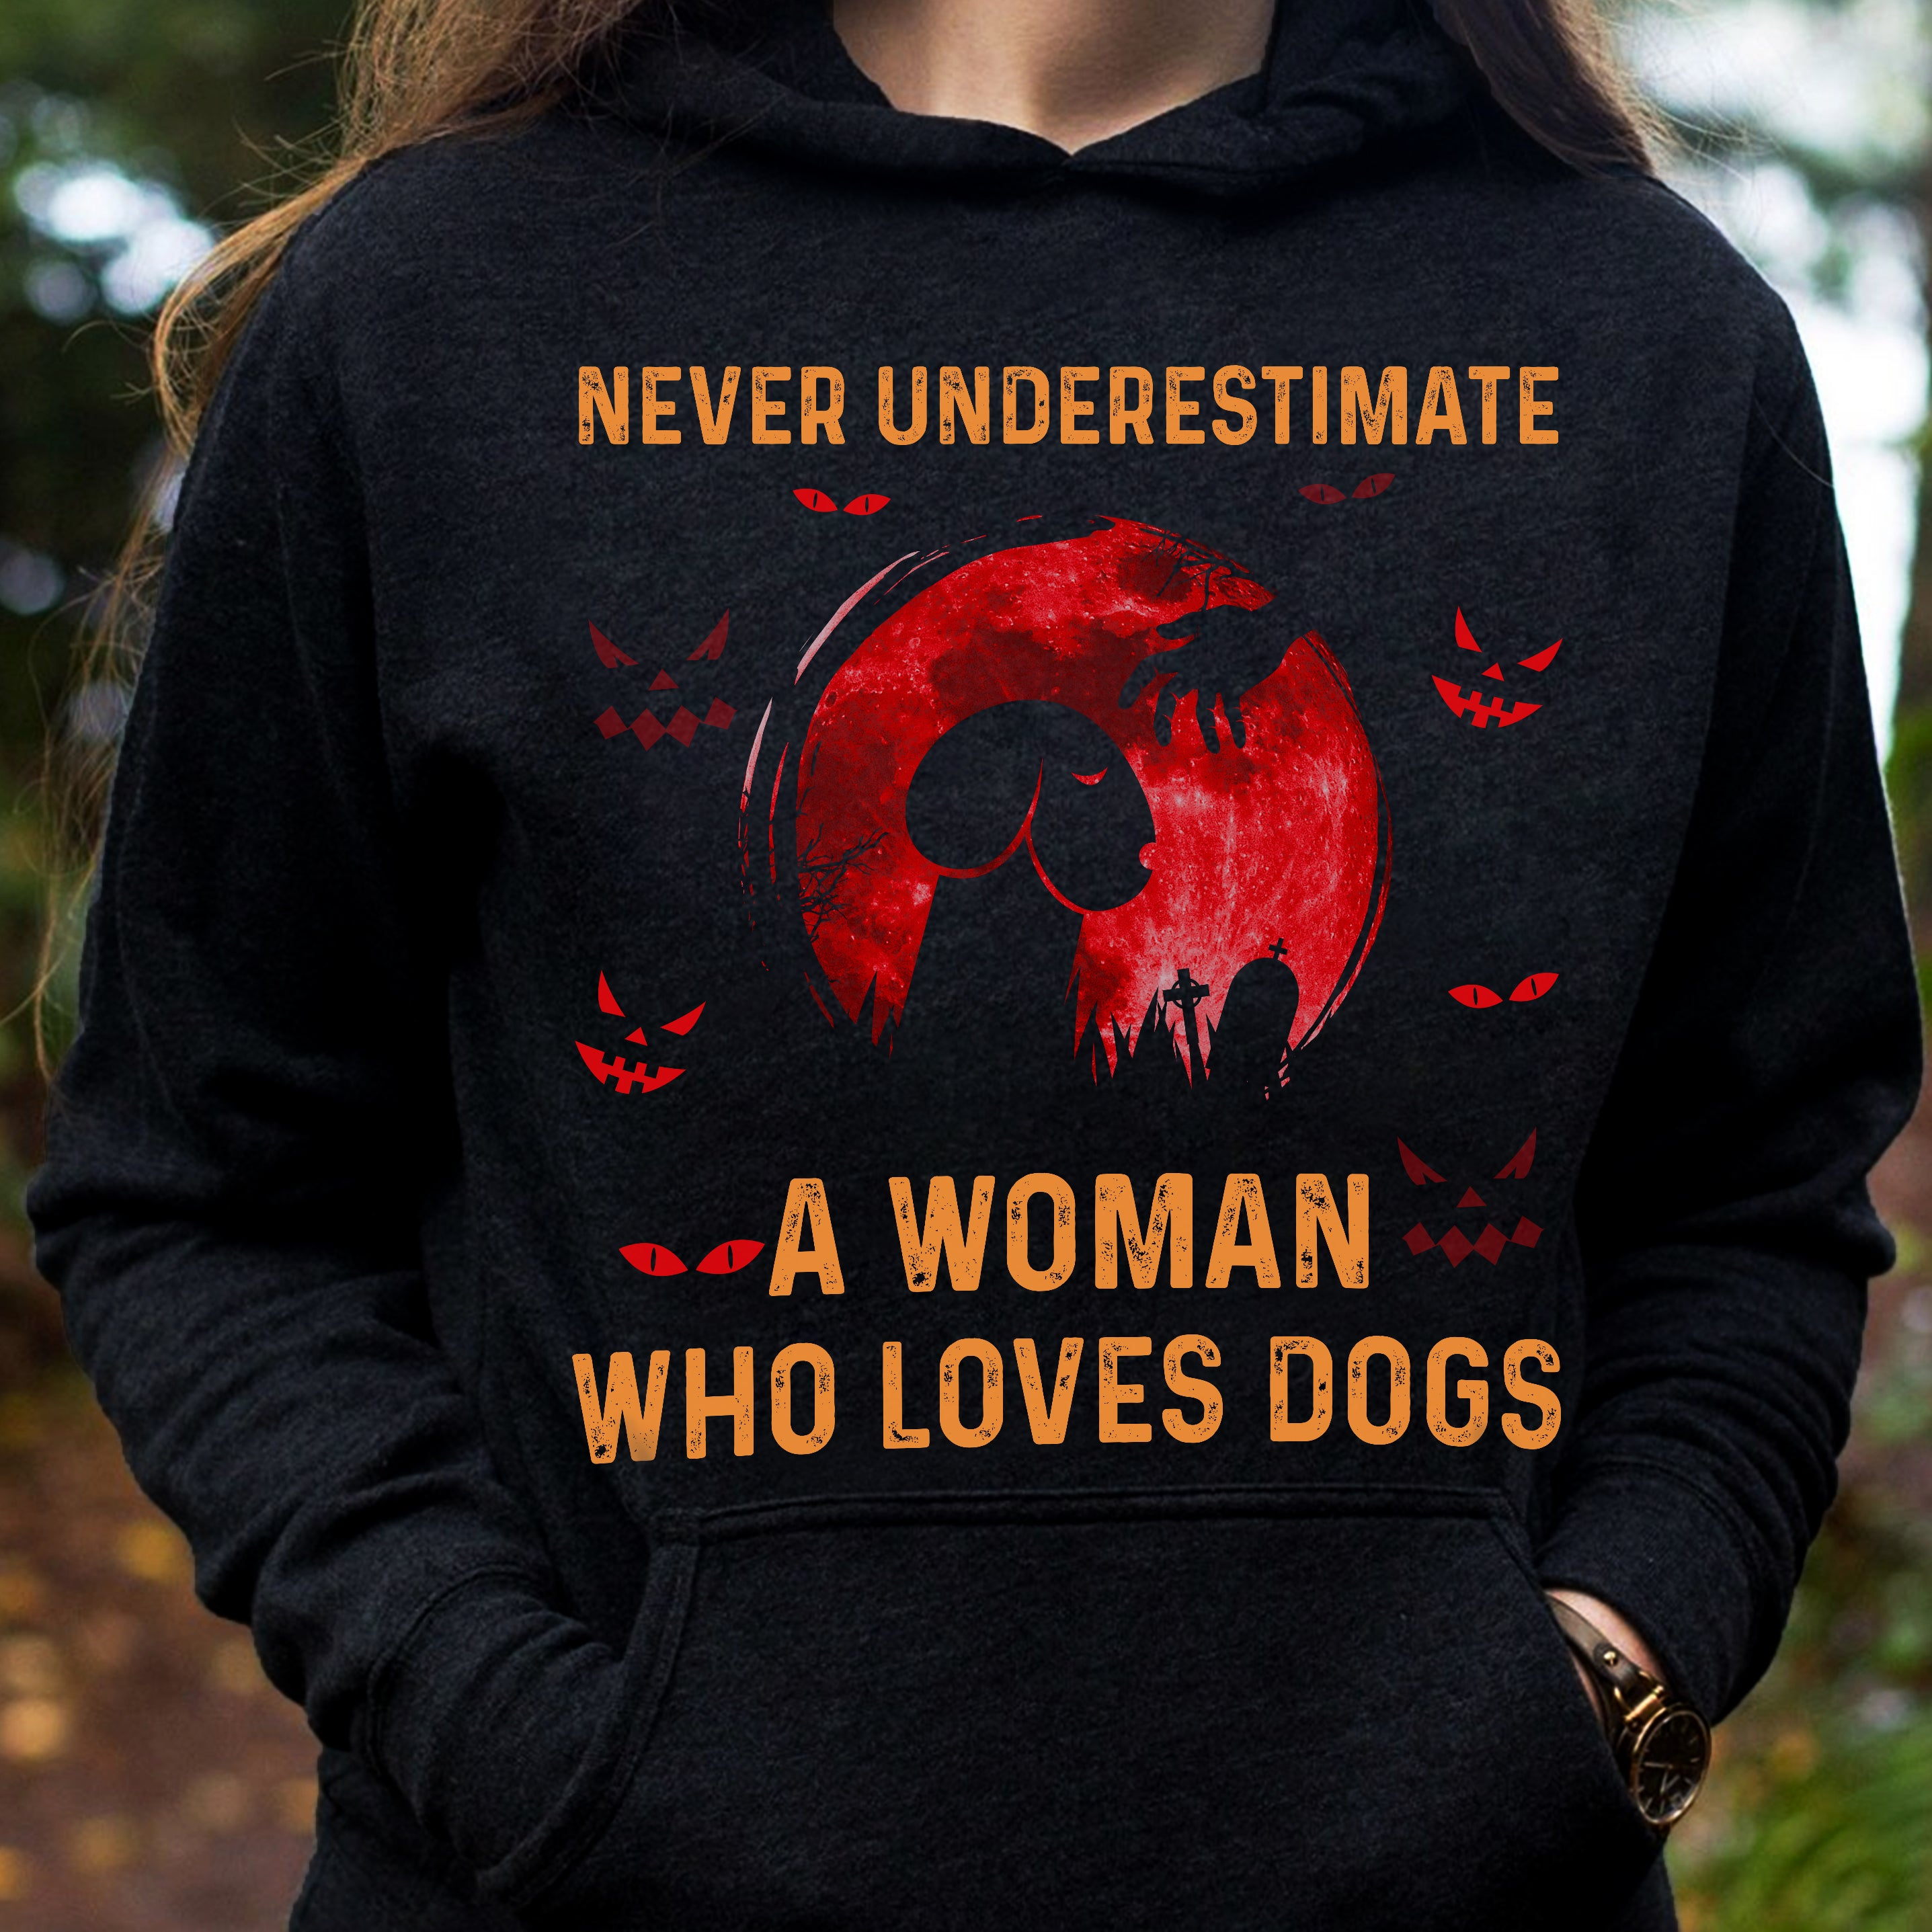 Never underestimate a woman who loves dogs